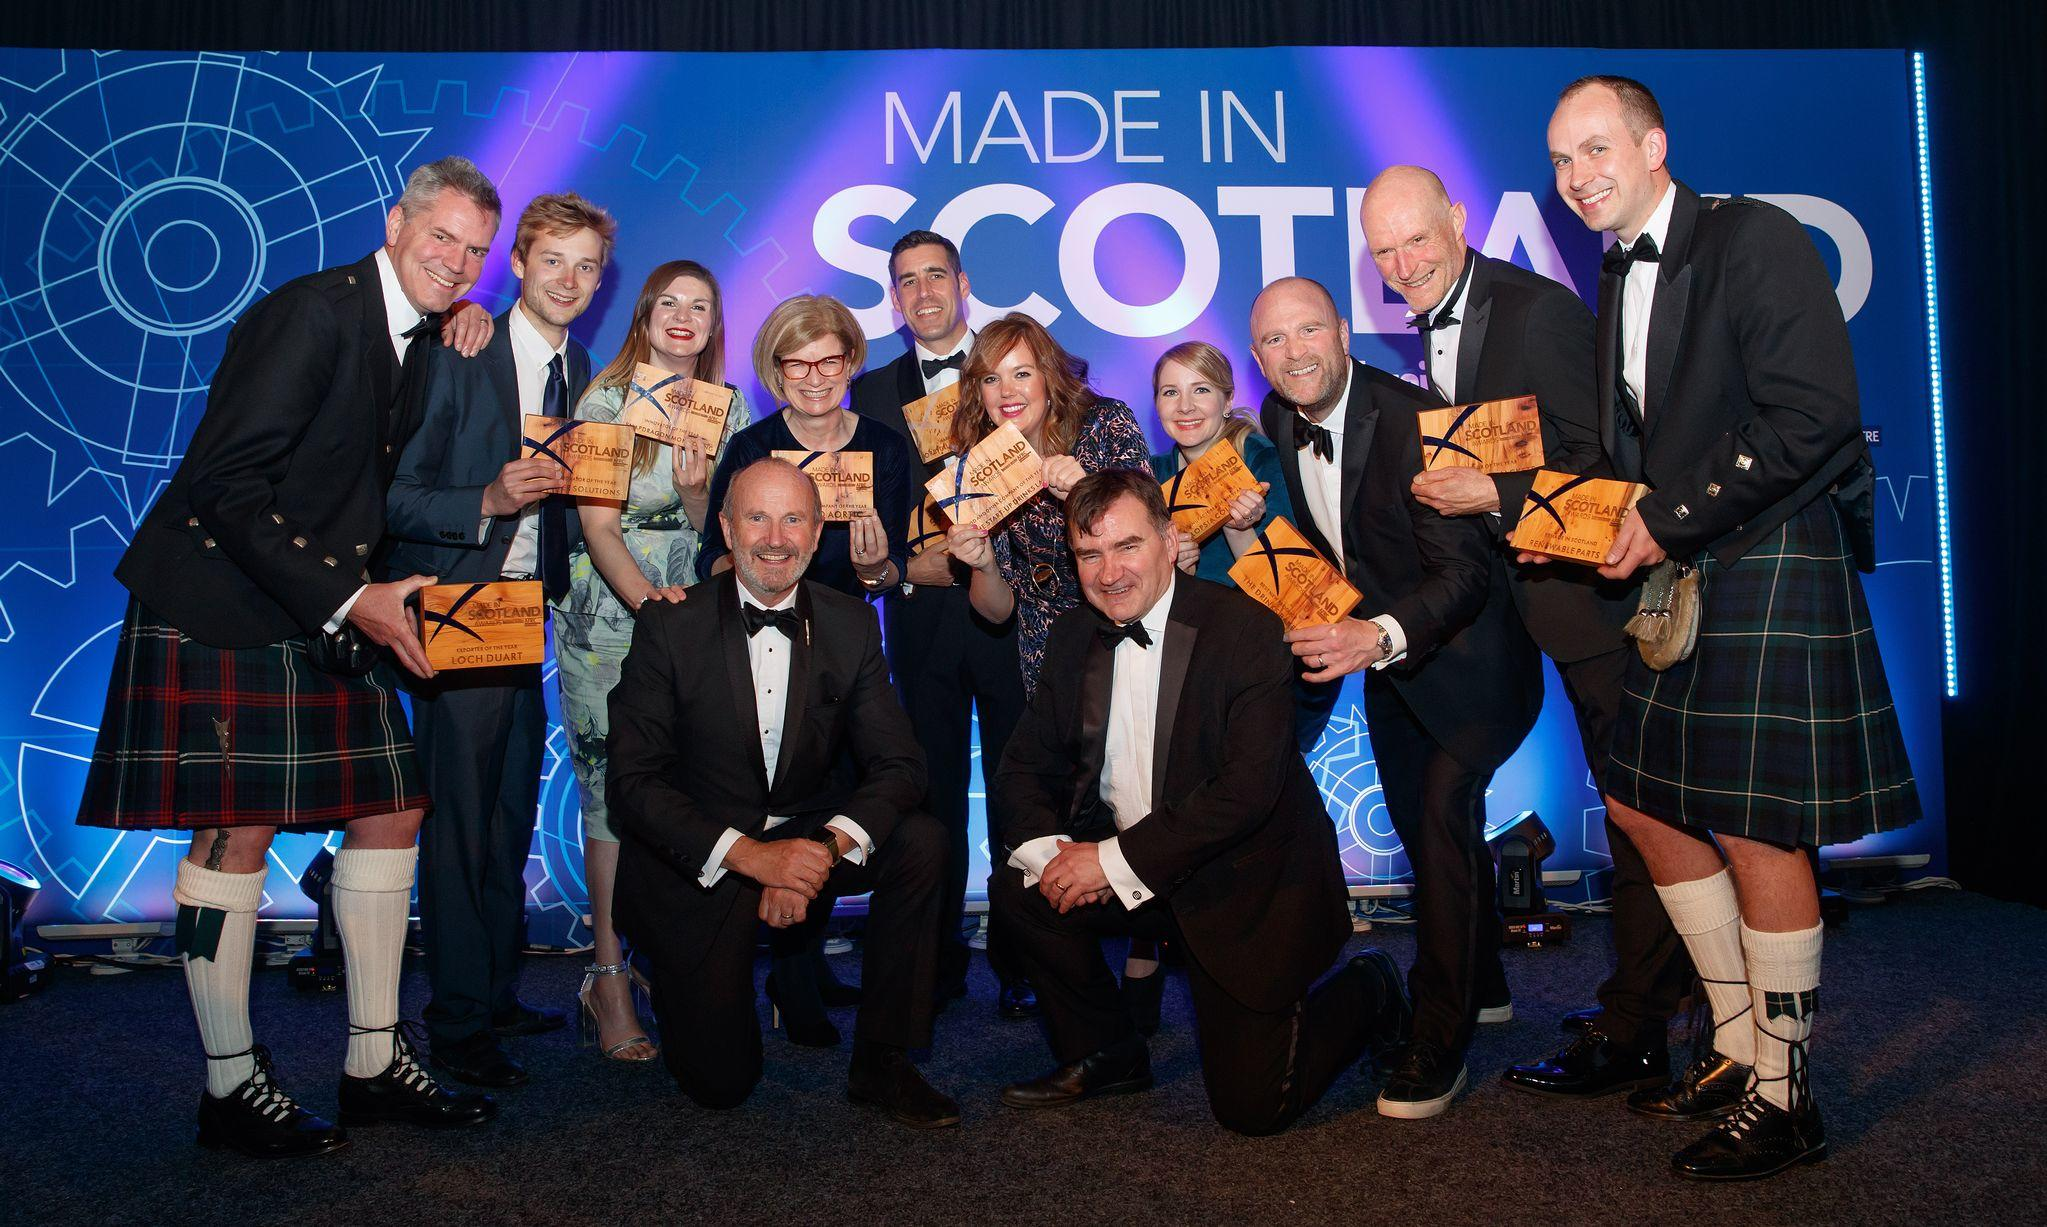 Winners Remade in Scotland Award!